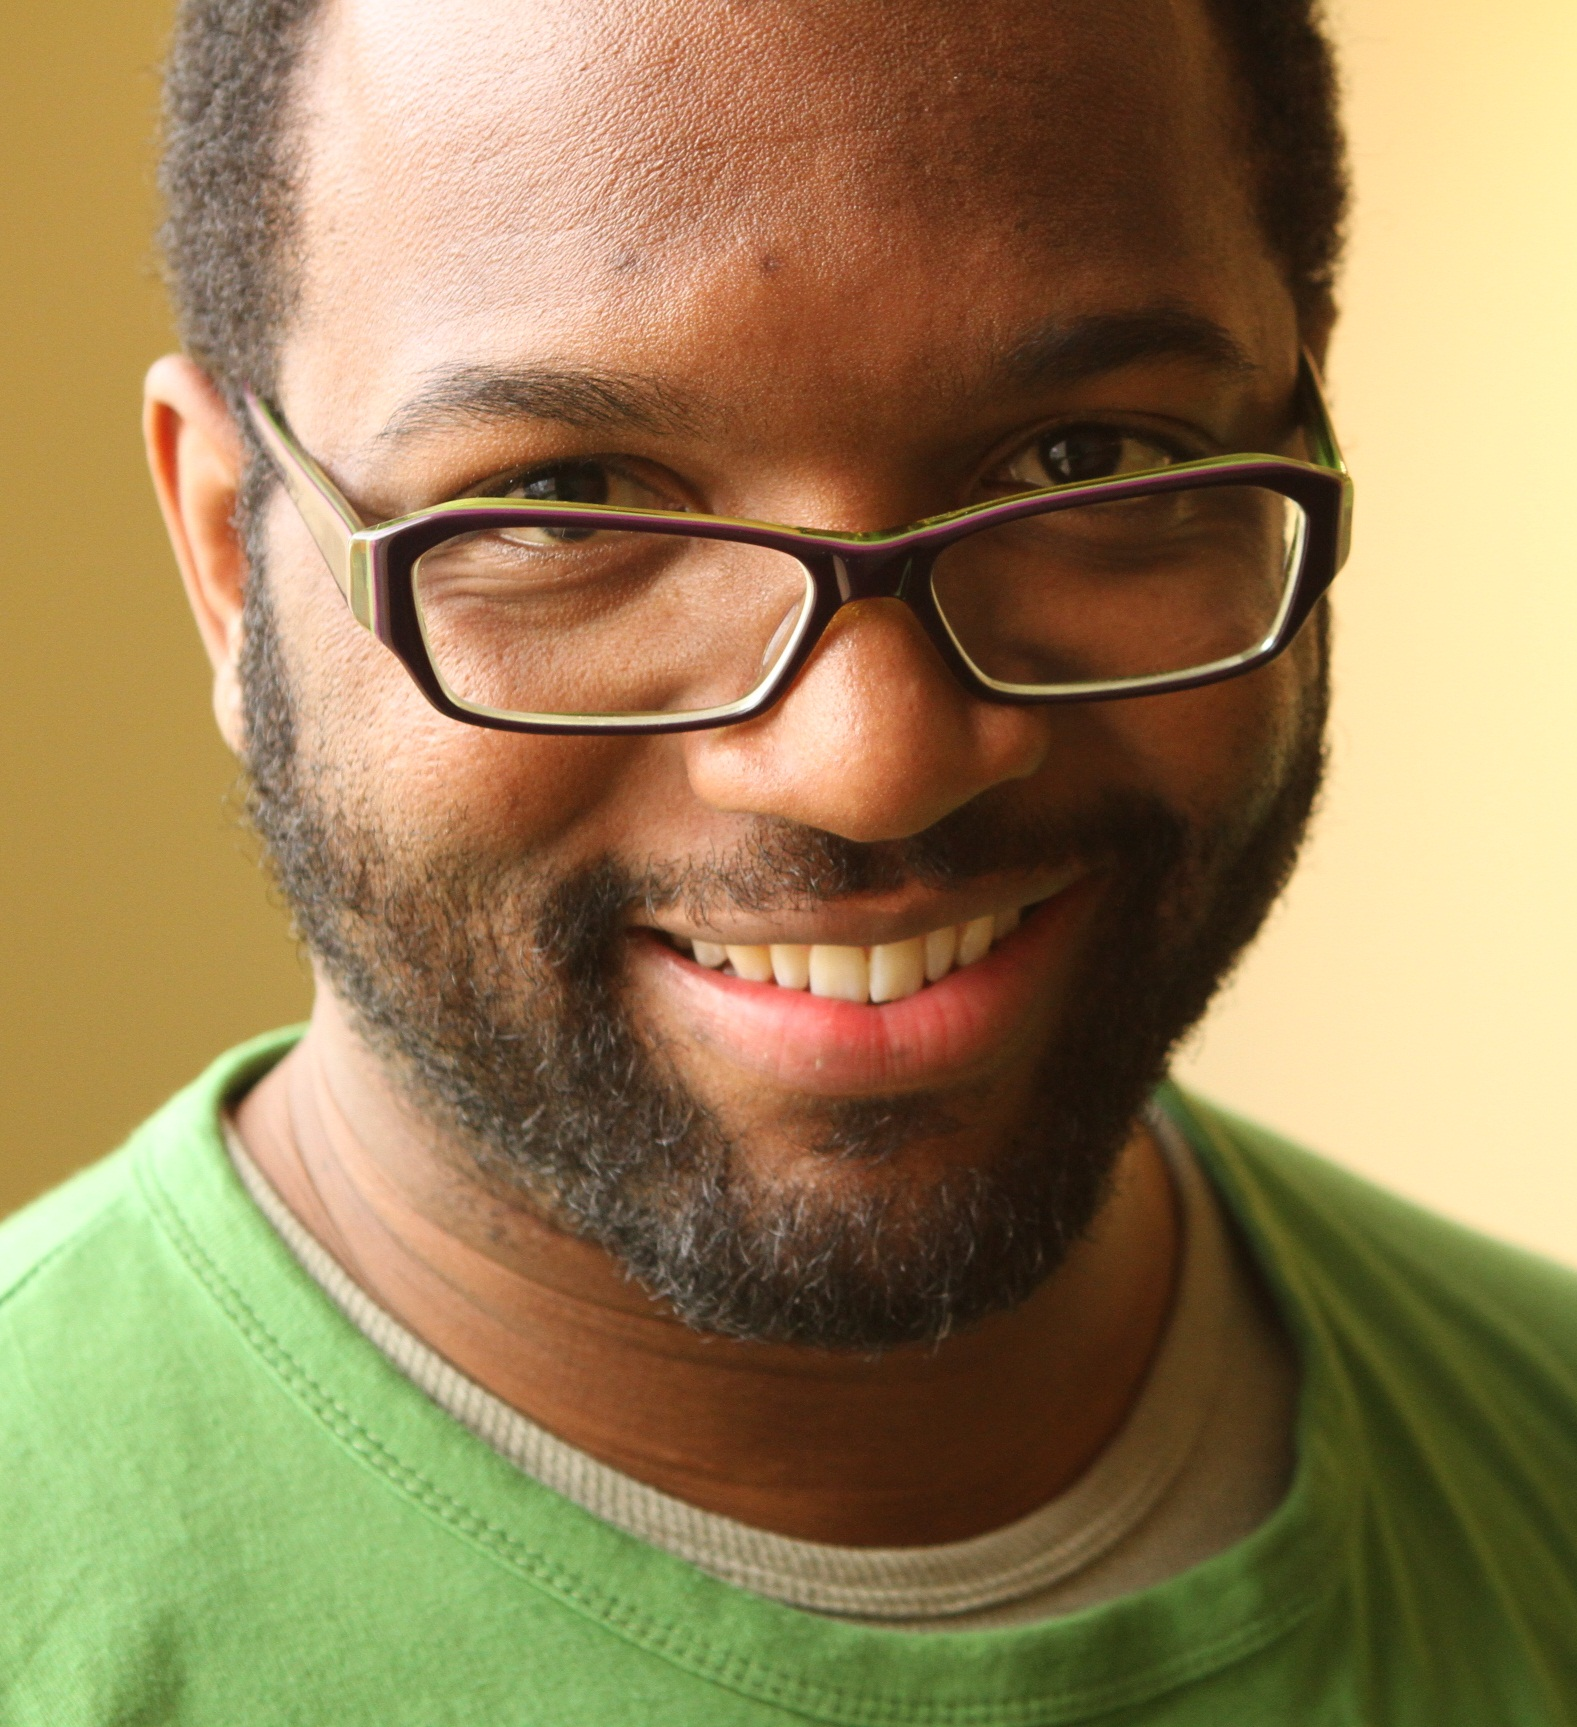 Baratunde Thurston's Headshot